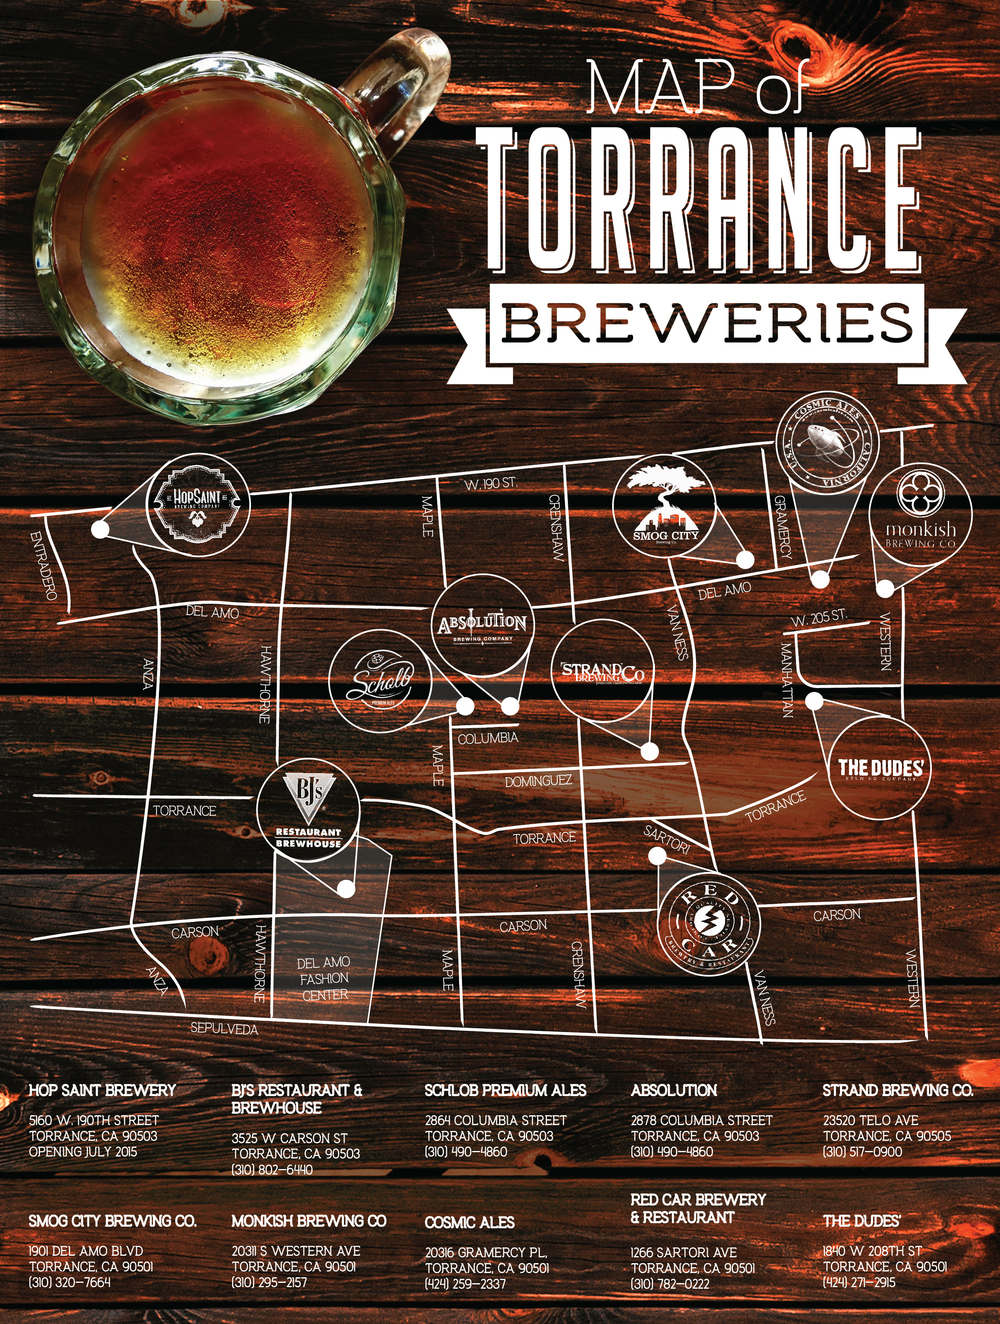 Beer Map of Torrance